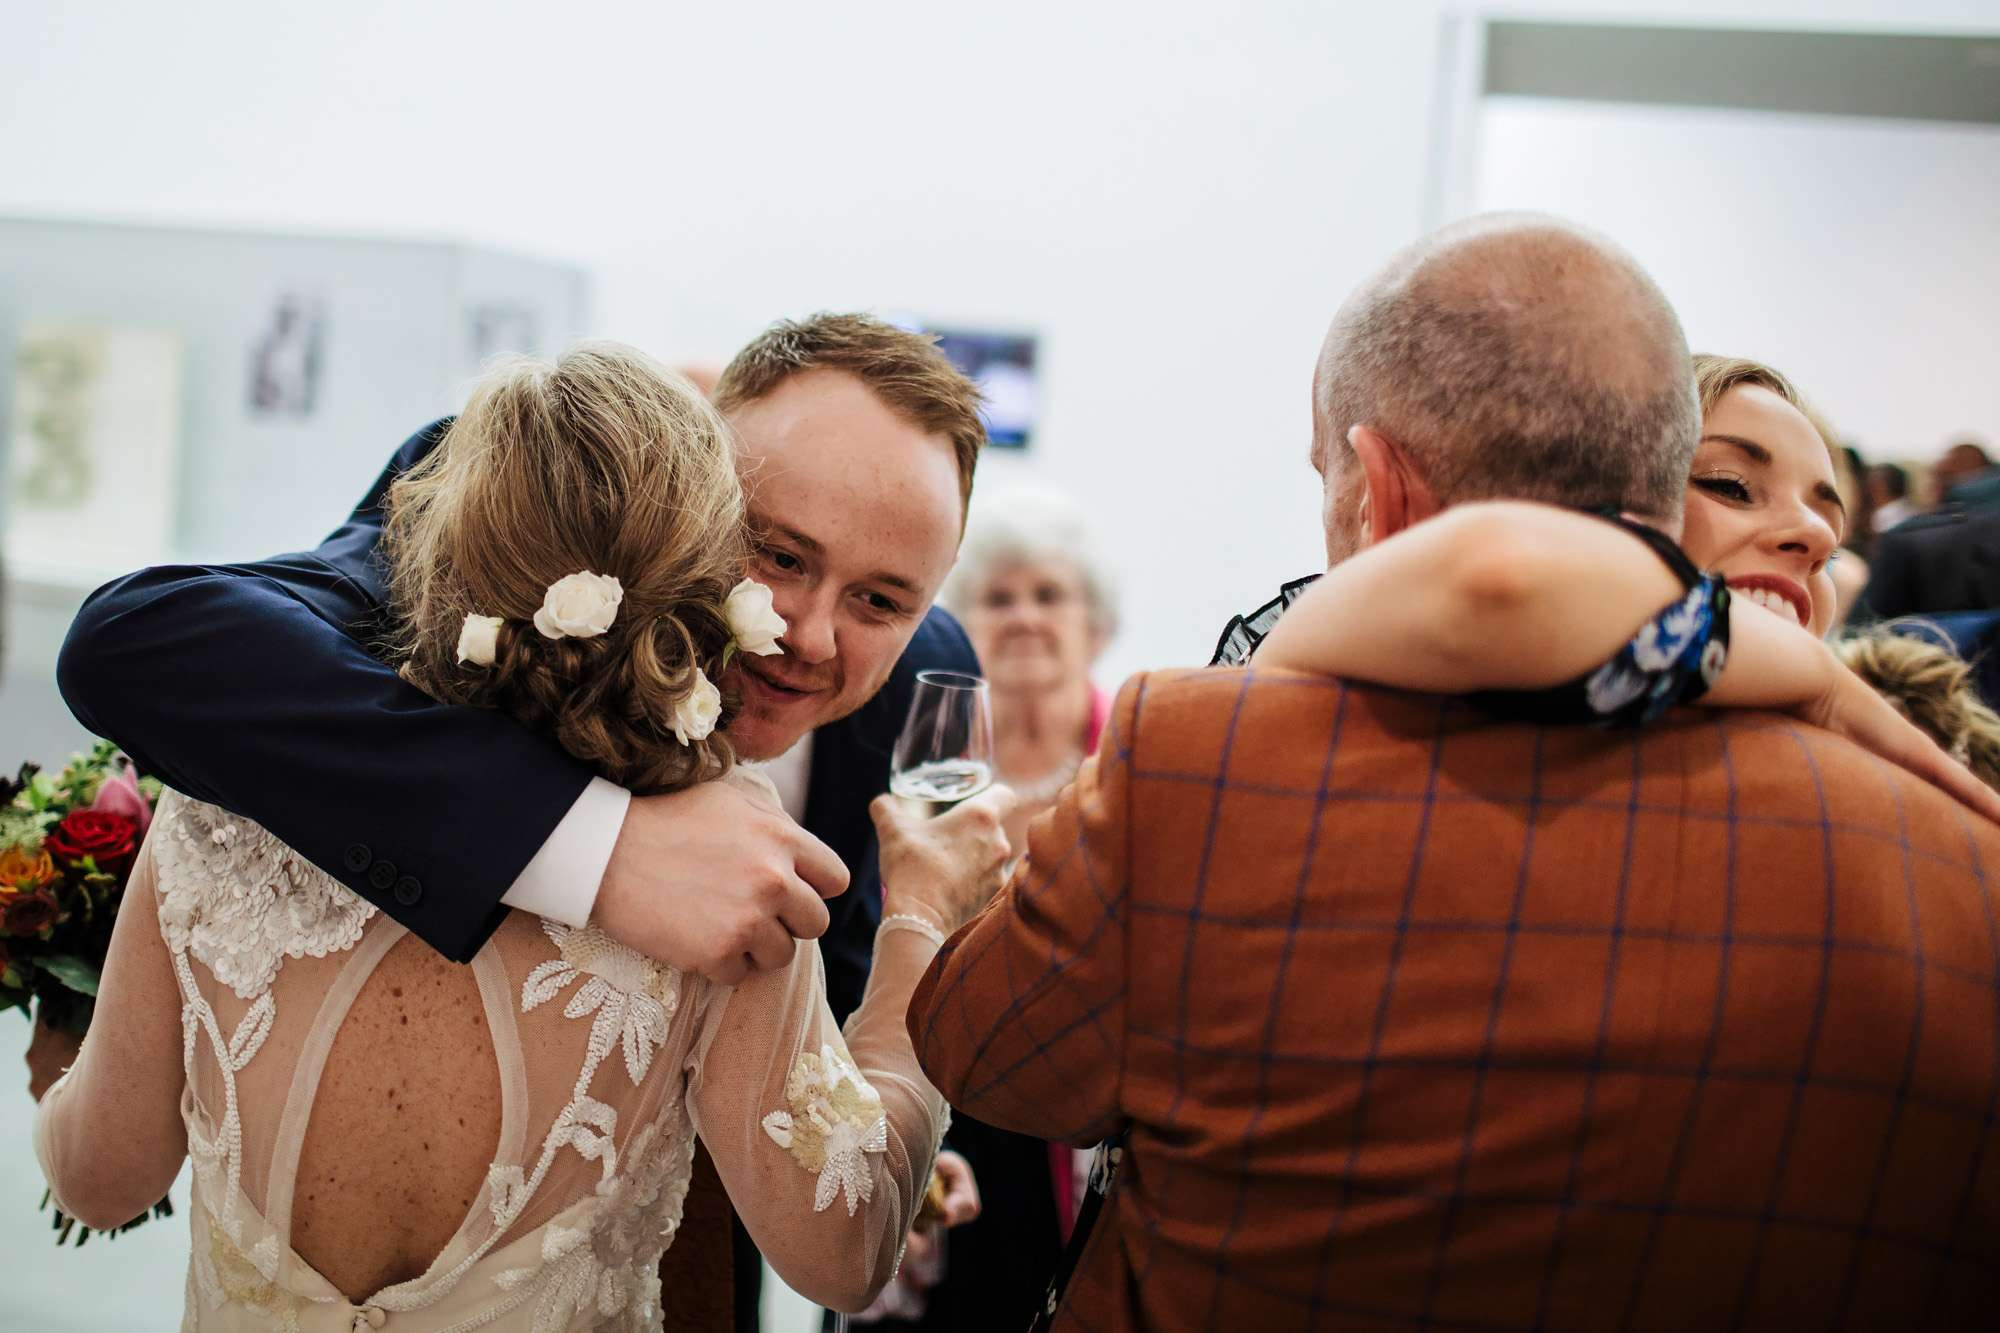 Bride hugs the wedding guests after the ceremony